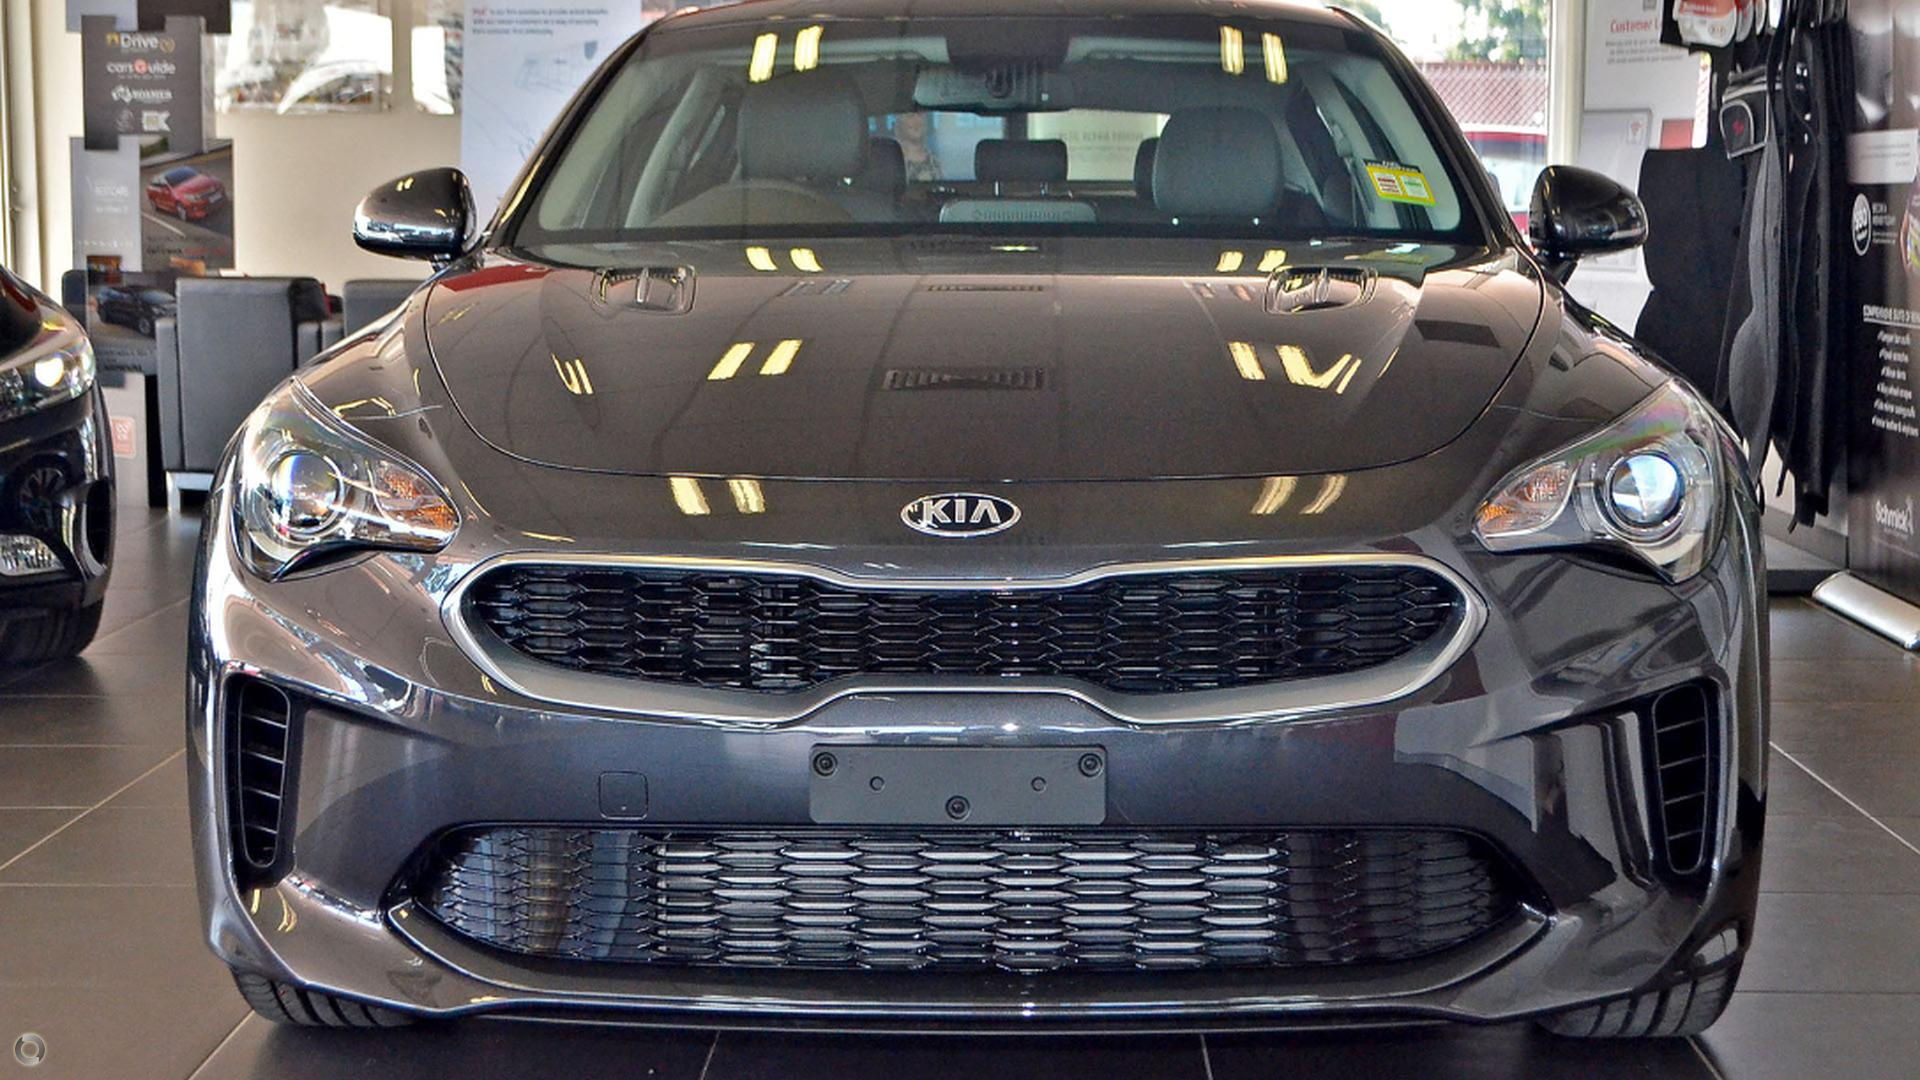 2017 Kia Stinger Rafa Signature Edition CK